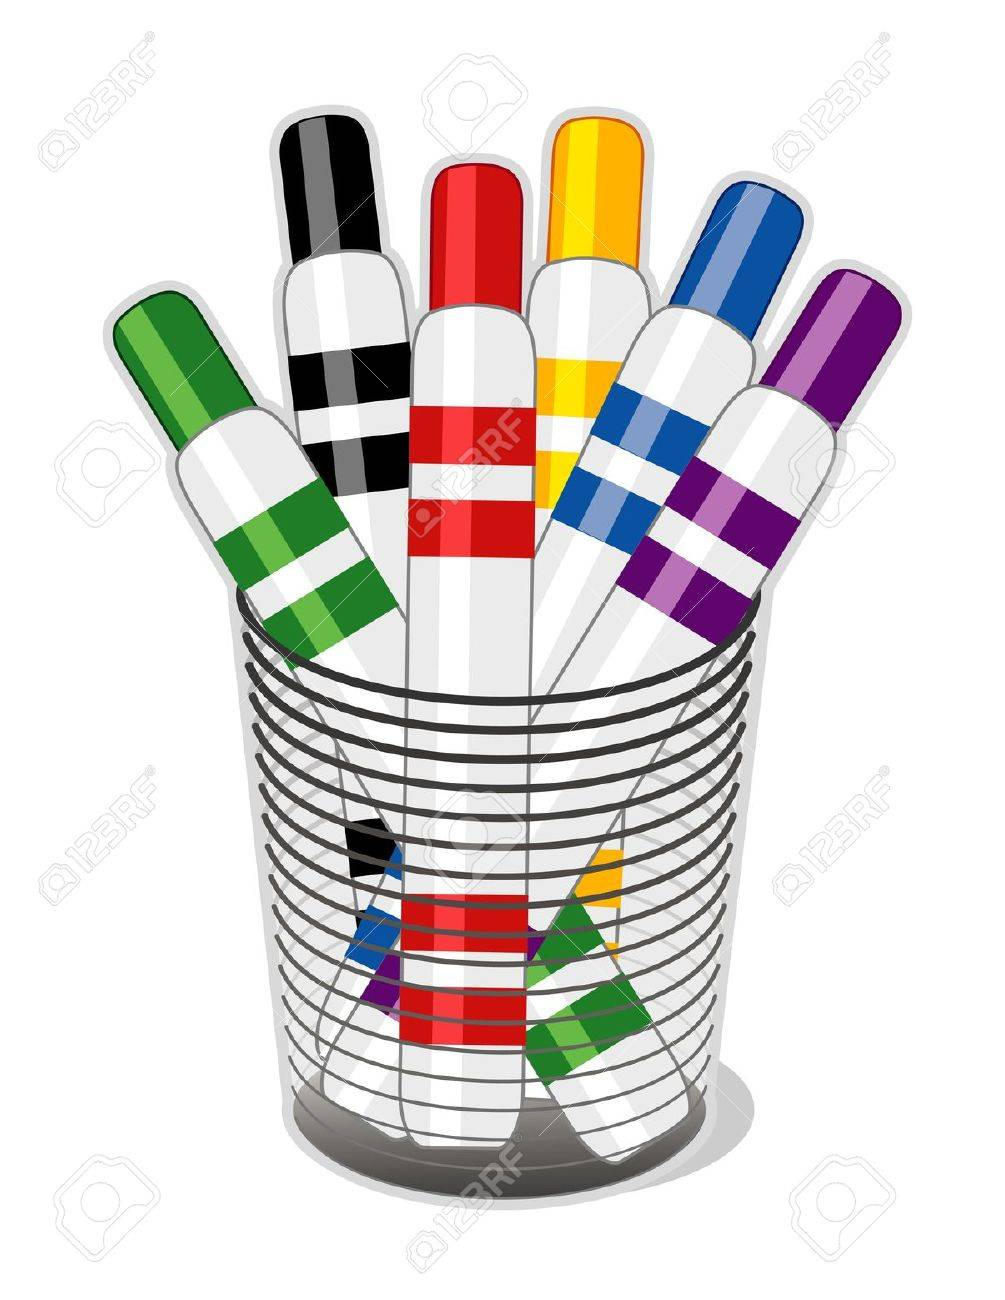 Felt Tip Marker Pens in desk organizer for home, business, back to school projects. Stock Vector - 11170846